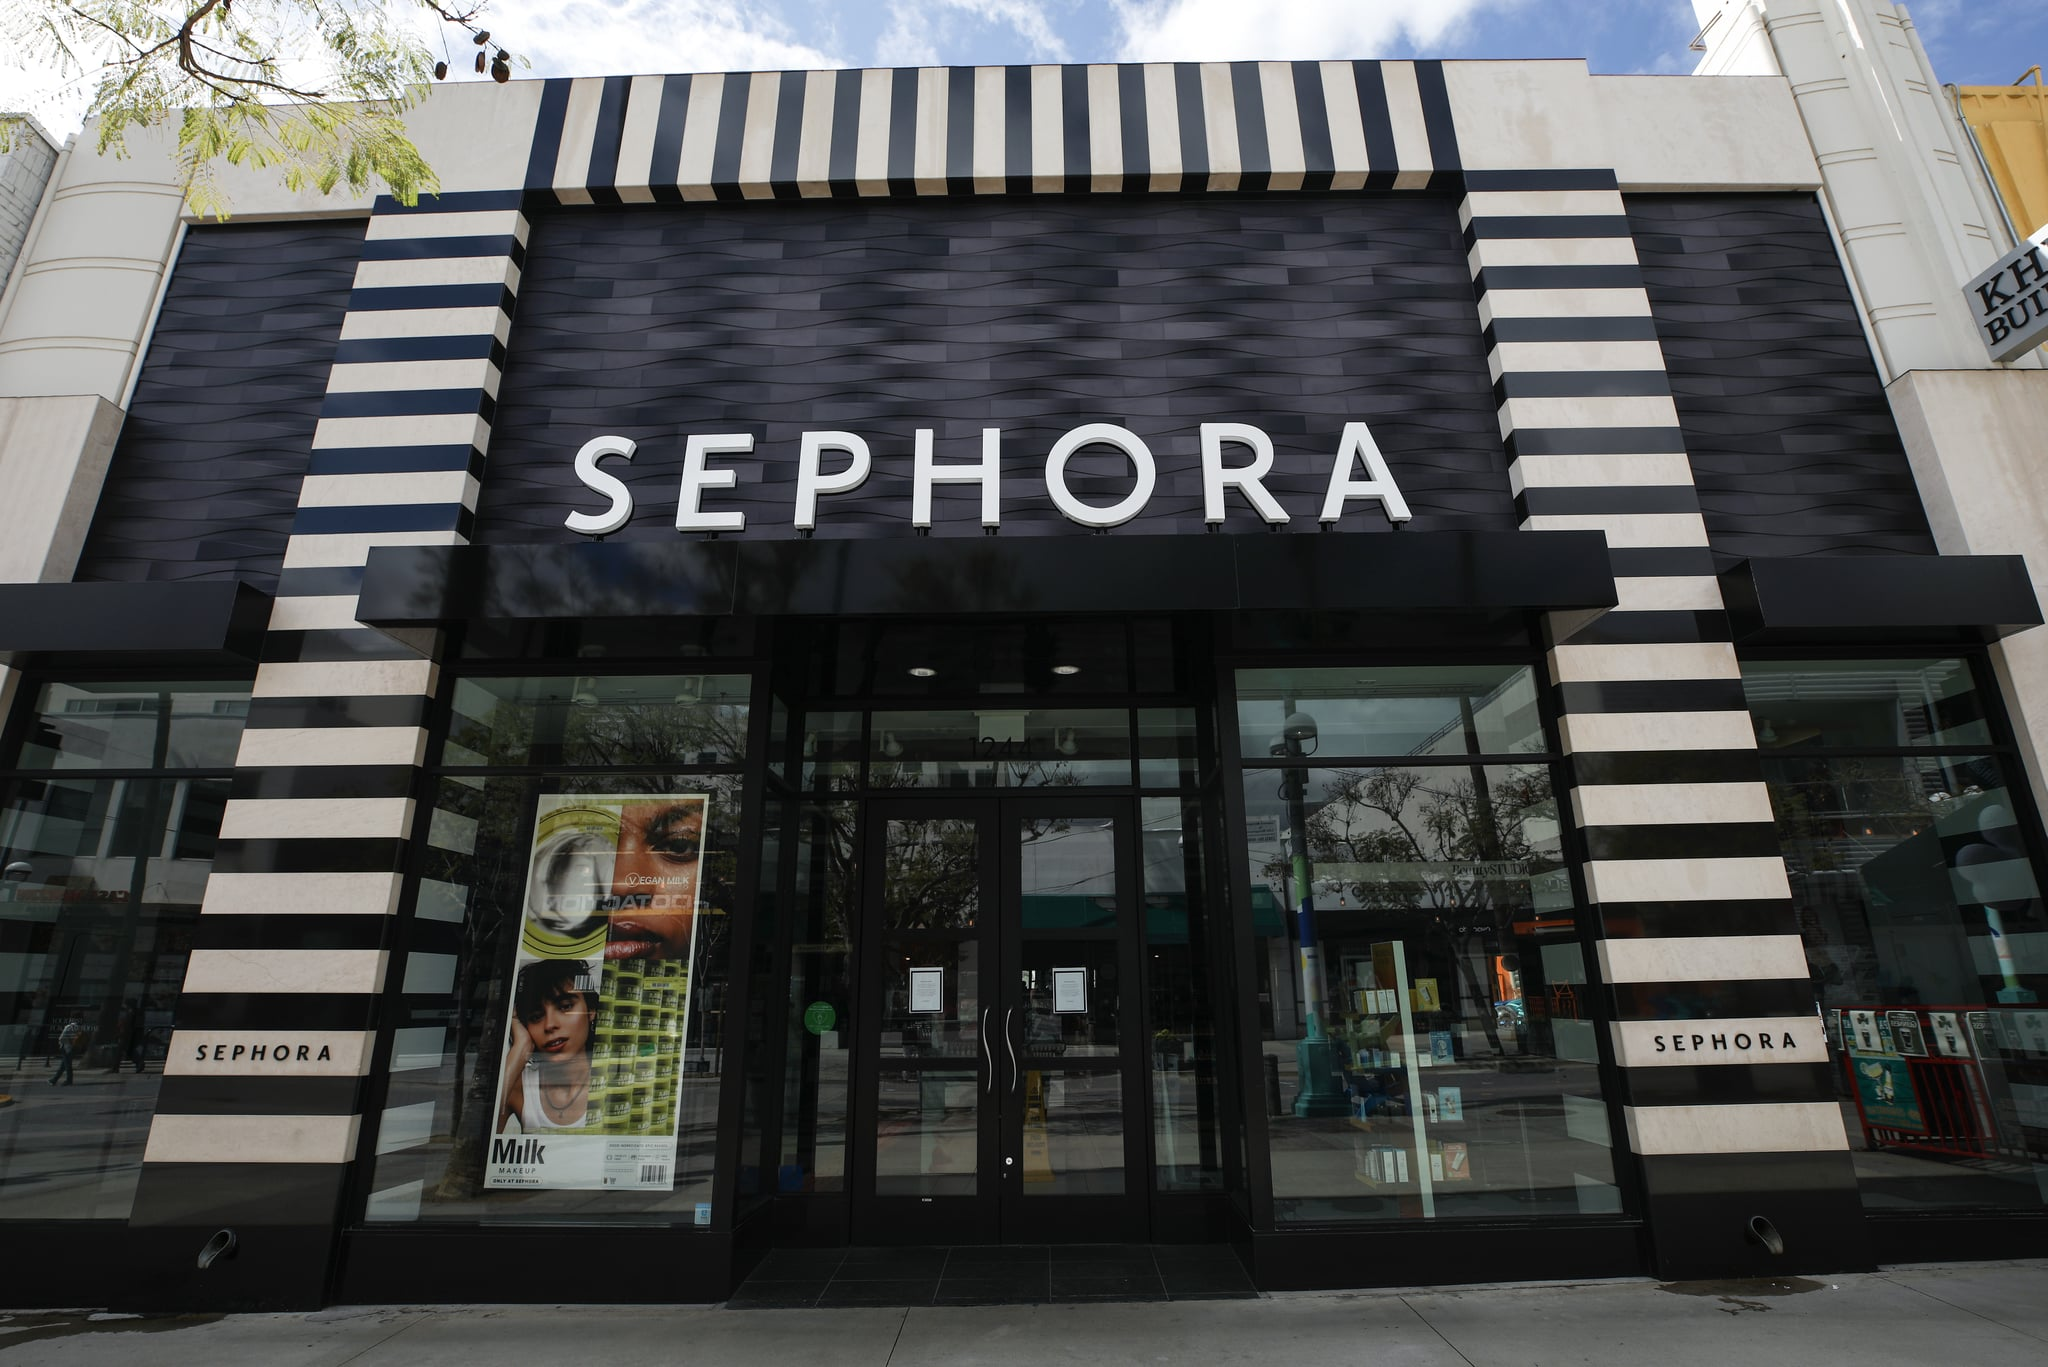 SANTA MONICA, CALIFORNIA - MARCH 17: A Sephora shop stands closed on March 17, 2020 in Santa Monica, California. Sephora is closing all their stores nationwide in response to the COVID-19 pandemic. (Photo by Mario Tama/Getty Images)